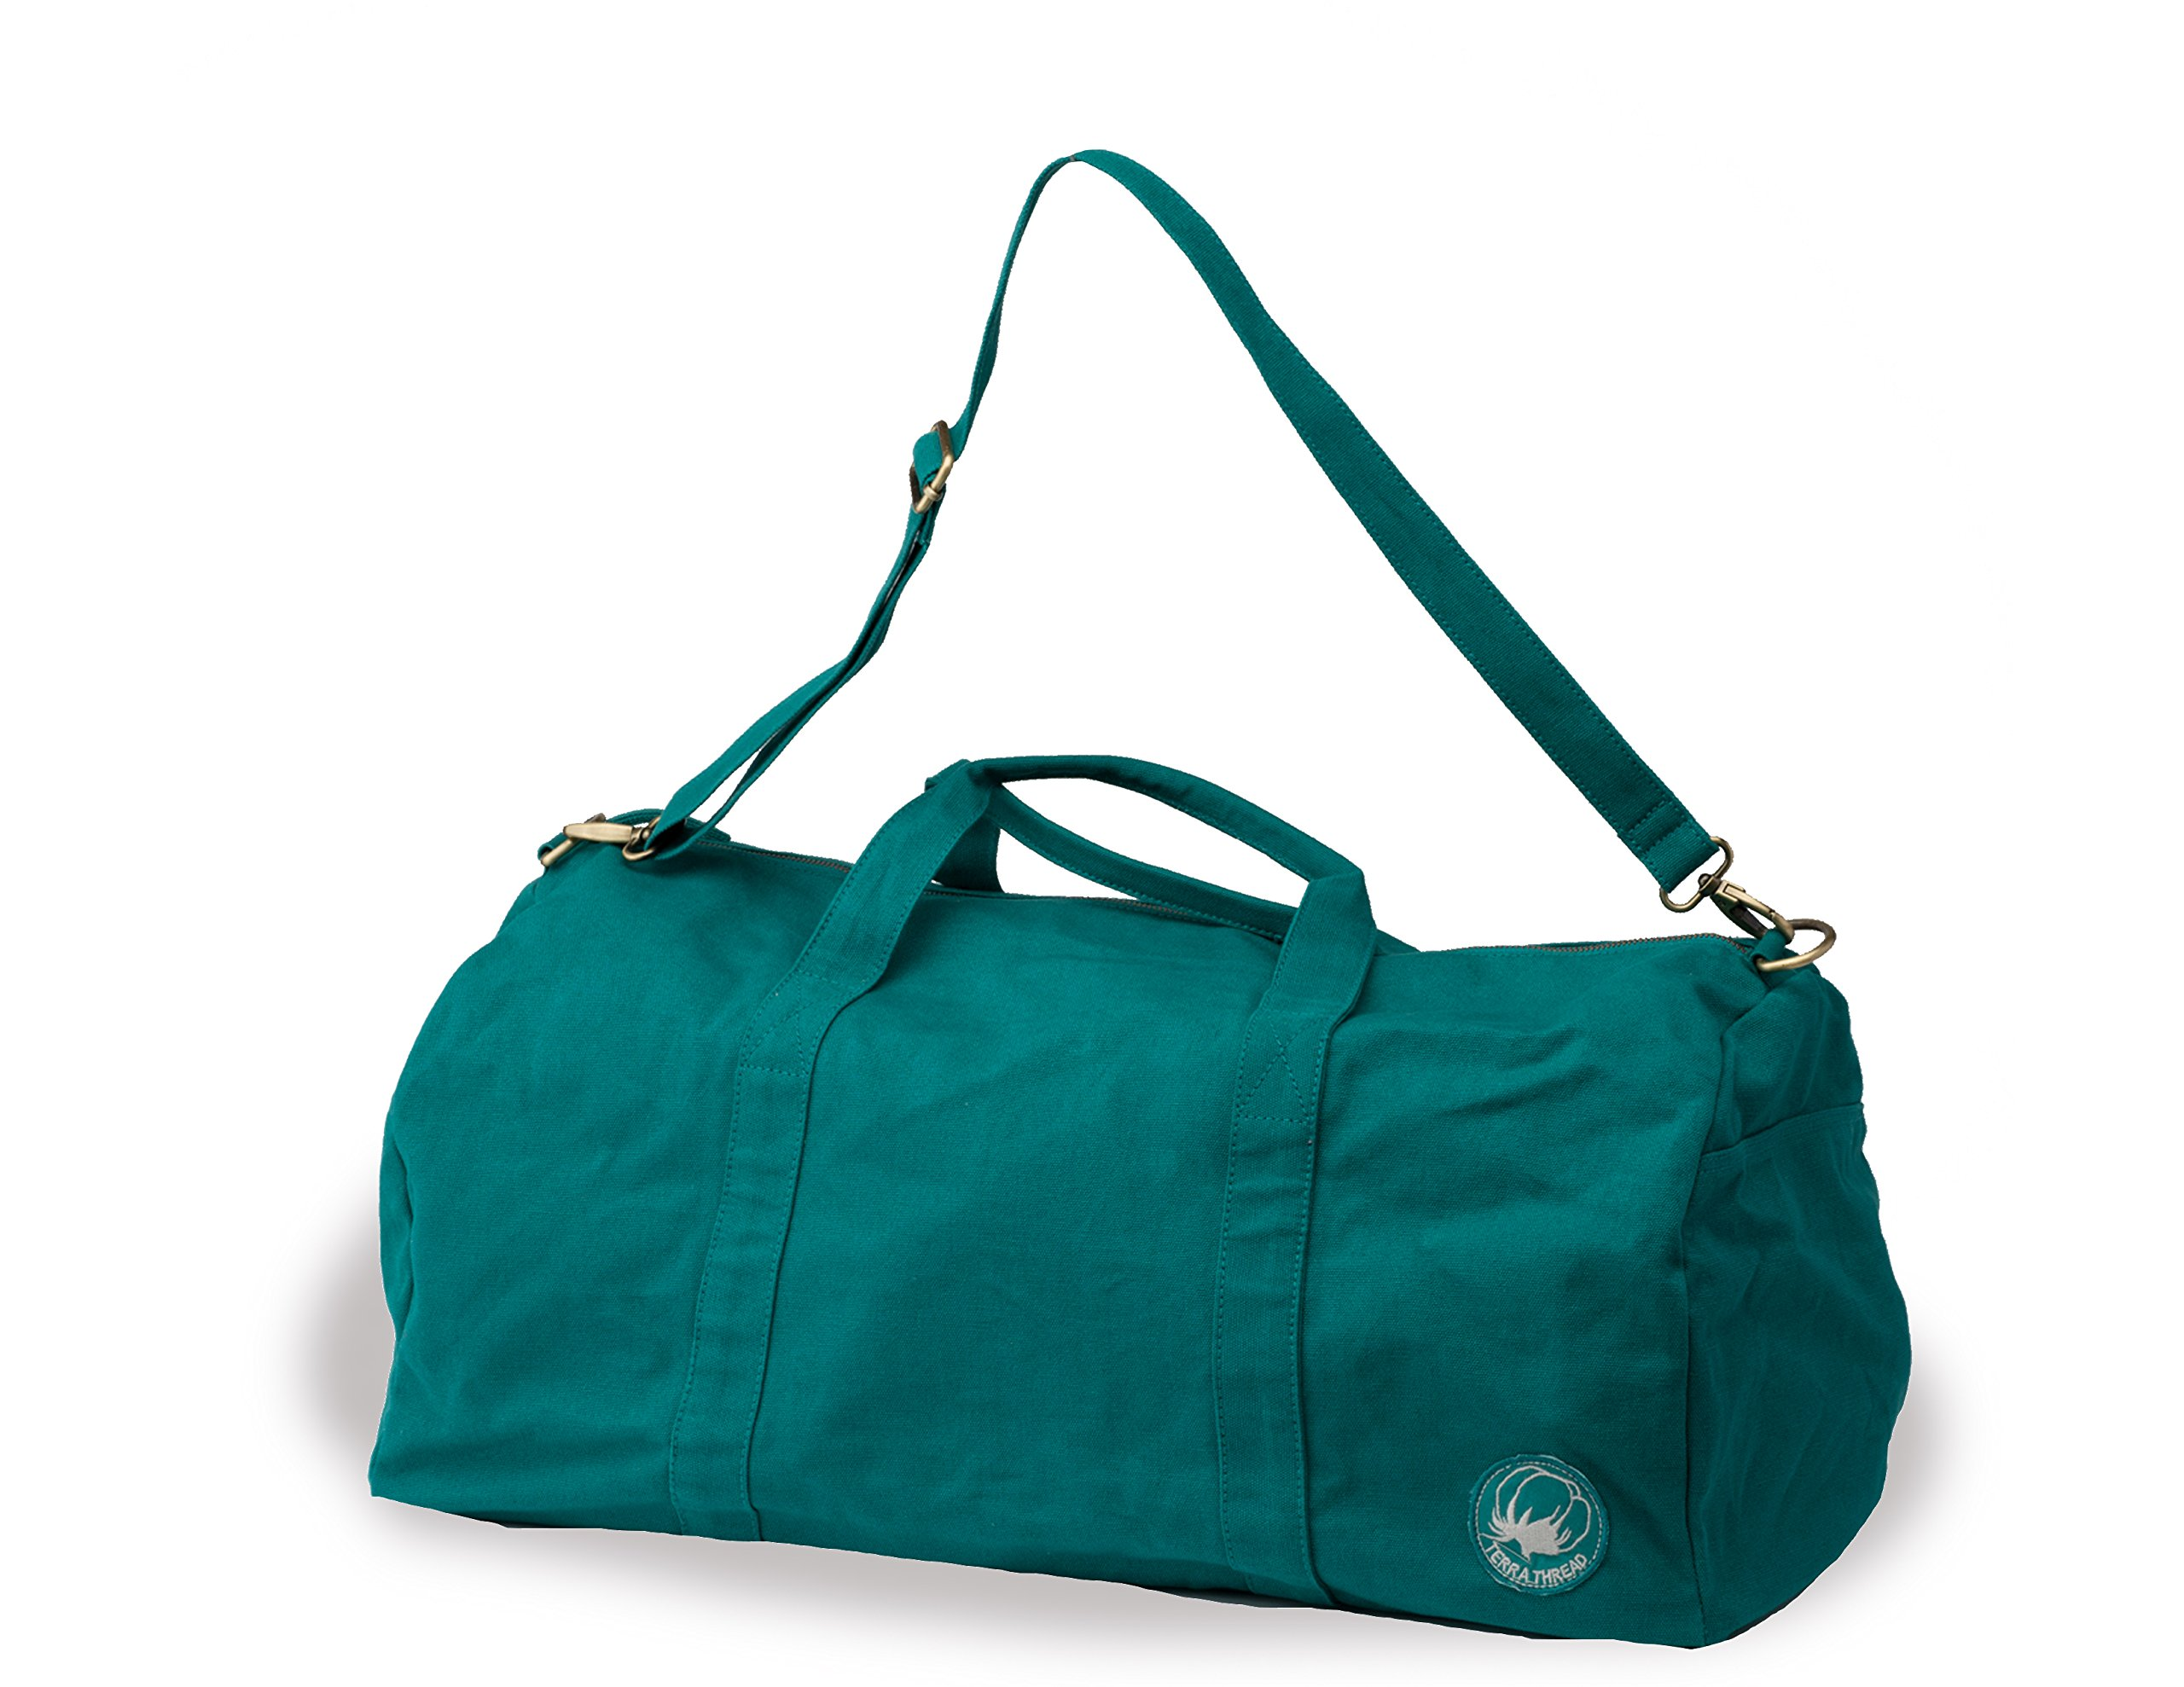 Organic Cotton Canvas Duffel Bag. Fair trade travel bags for men and women. by Terra Thread (Image #1)